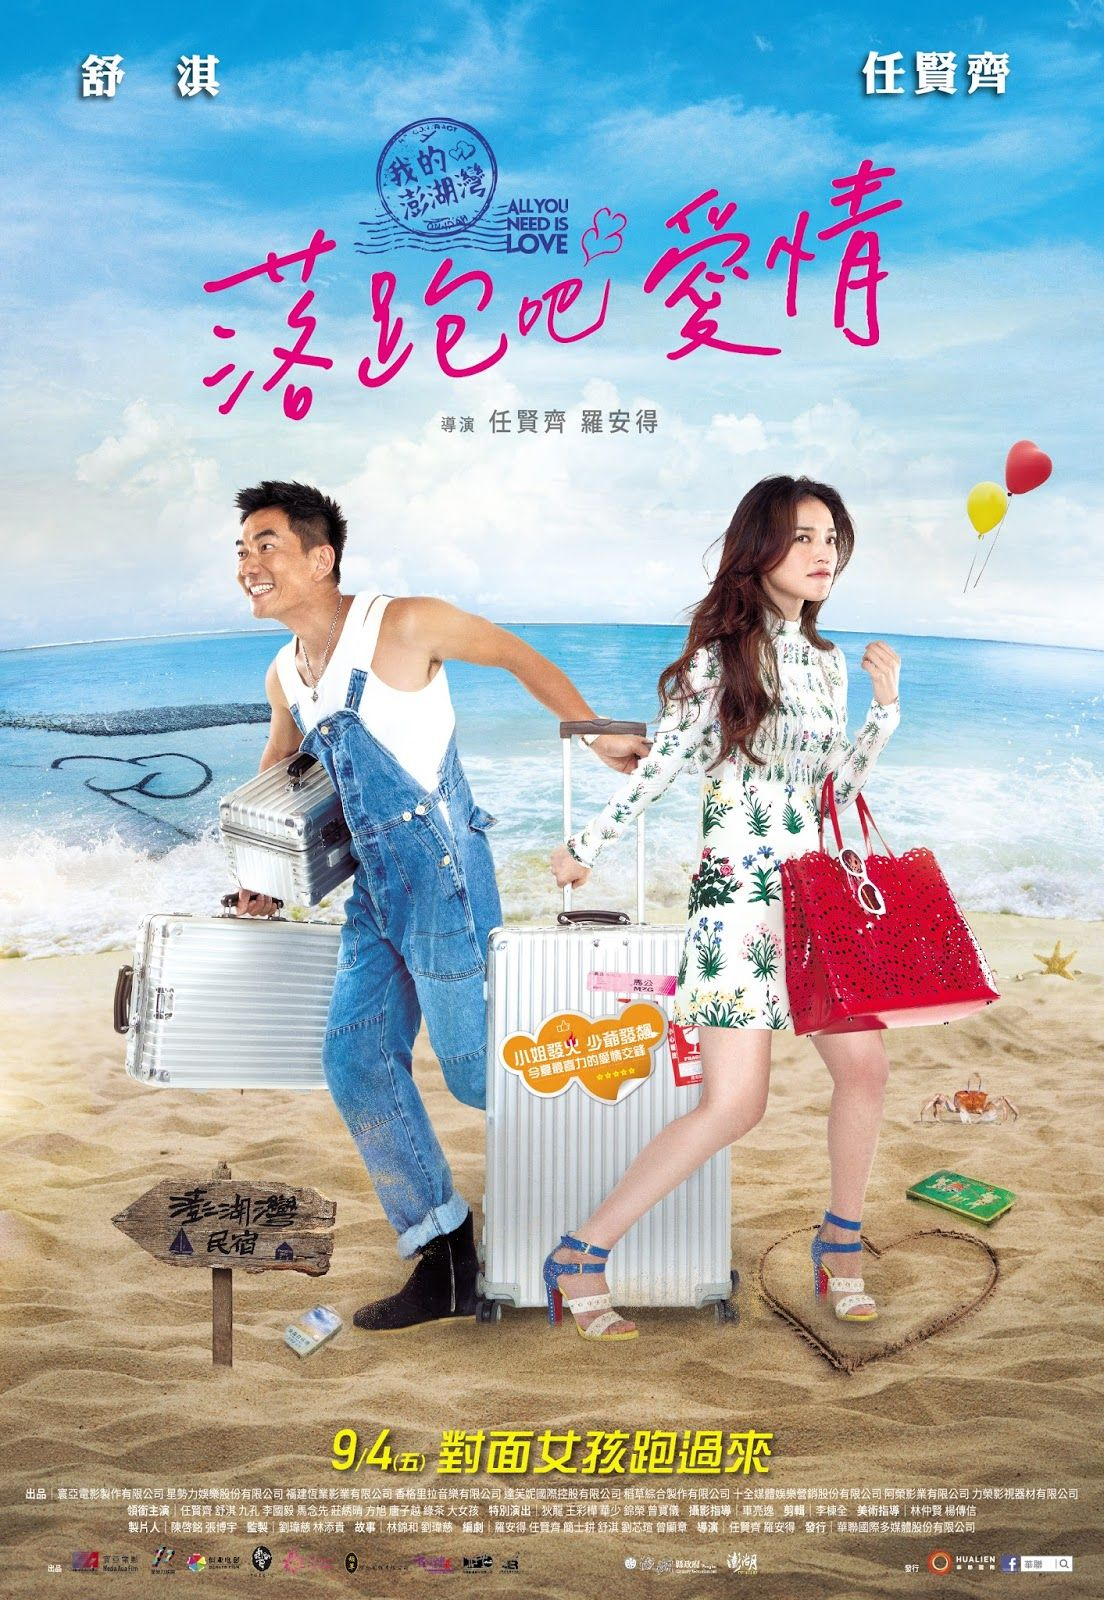 All You Need Is Love (2015) Subtitle Indonesia | Filmes